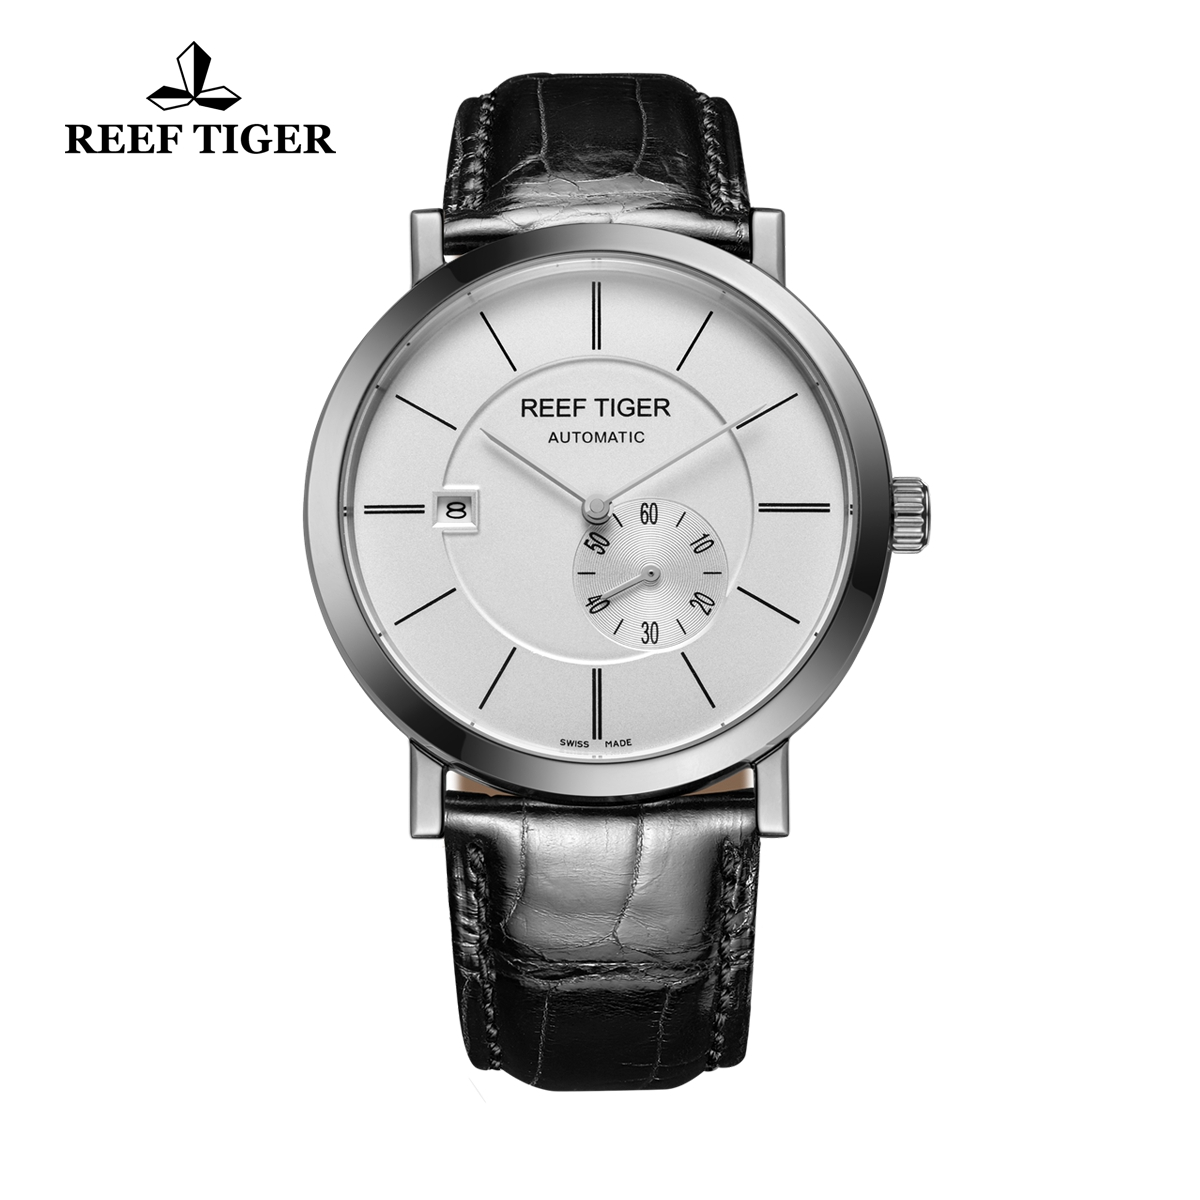 Reef Tiger Business Watch Ultra Thin Stainless Steel White Dial Automatic Watch RGA161-YWB